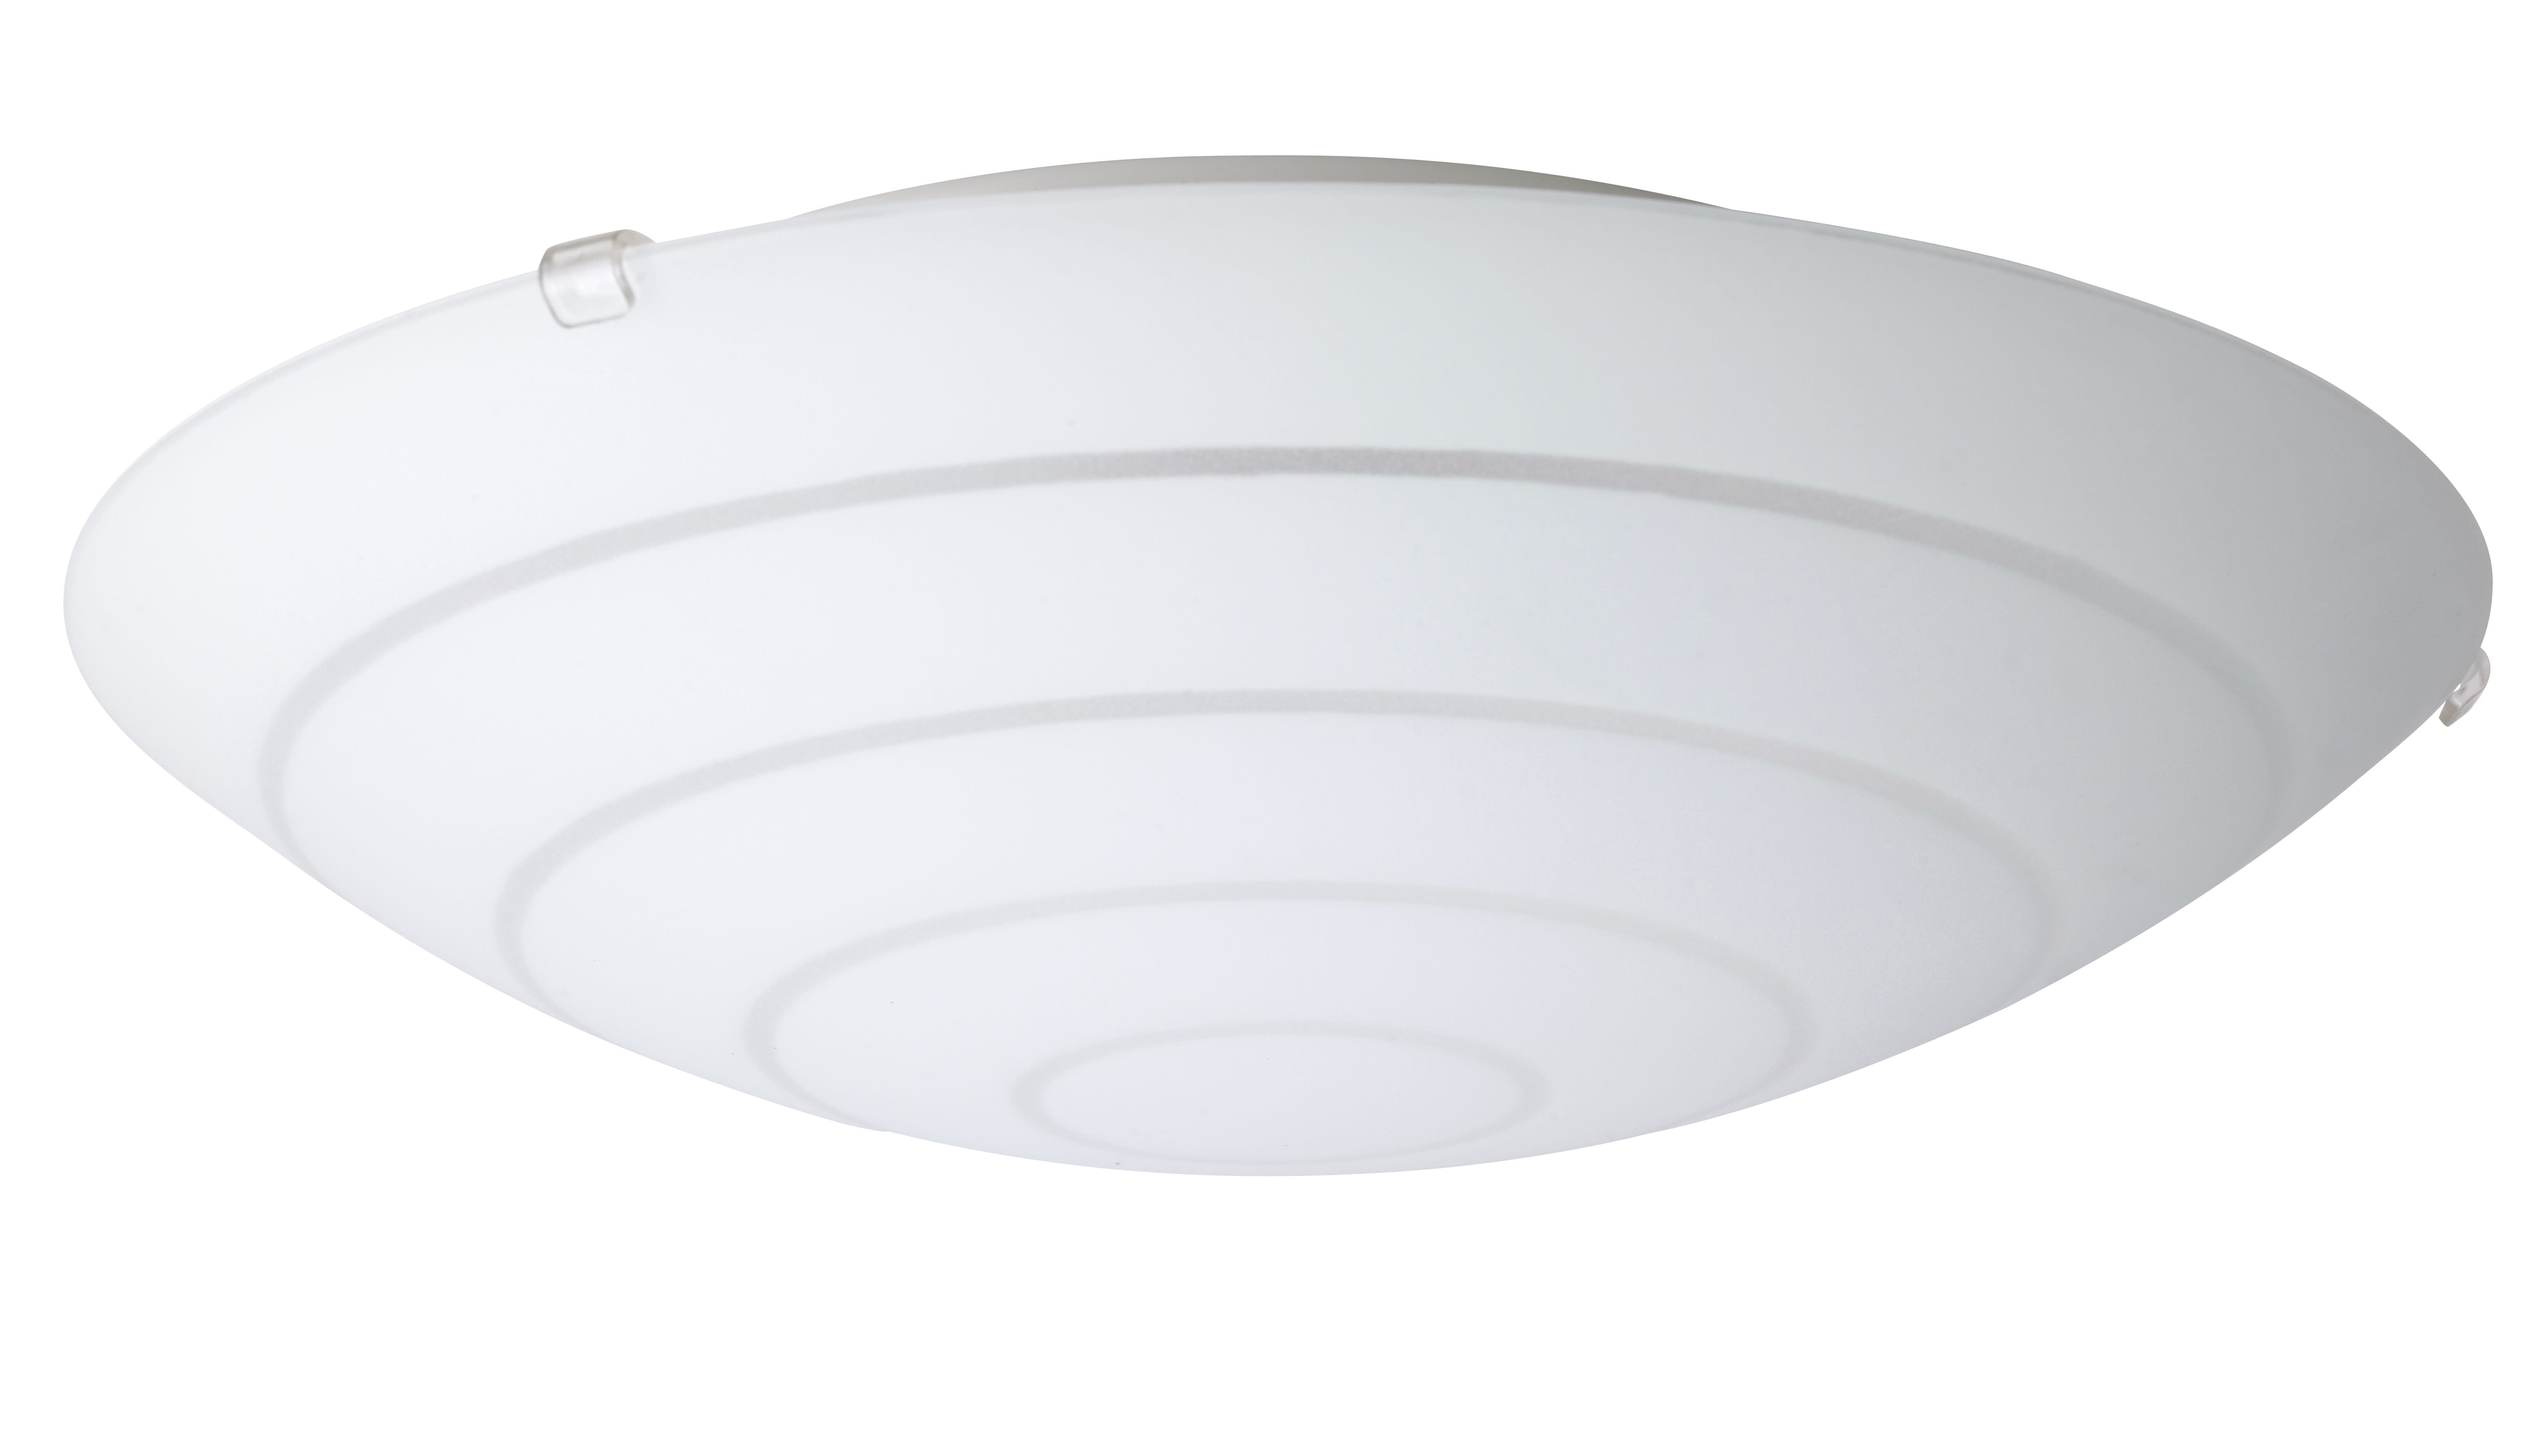 Ikea recalls ceiling lamps for risk of falling glass shades